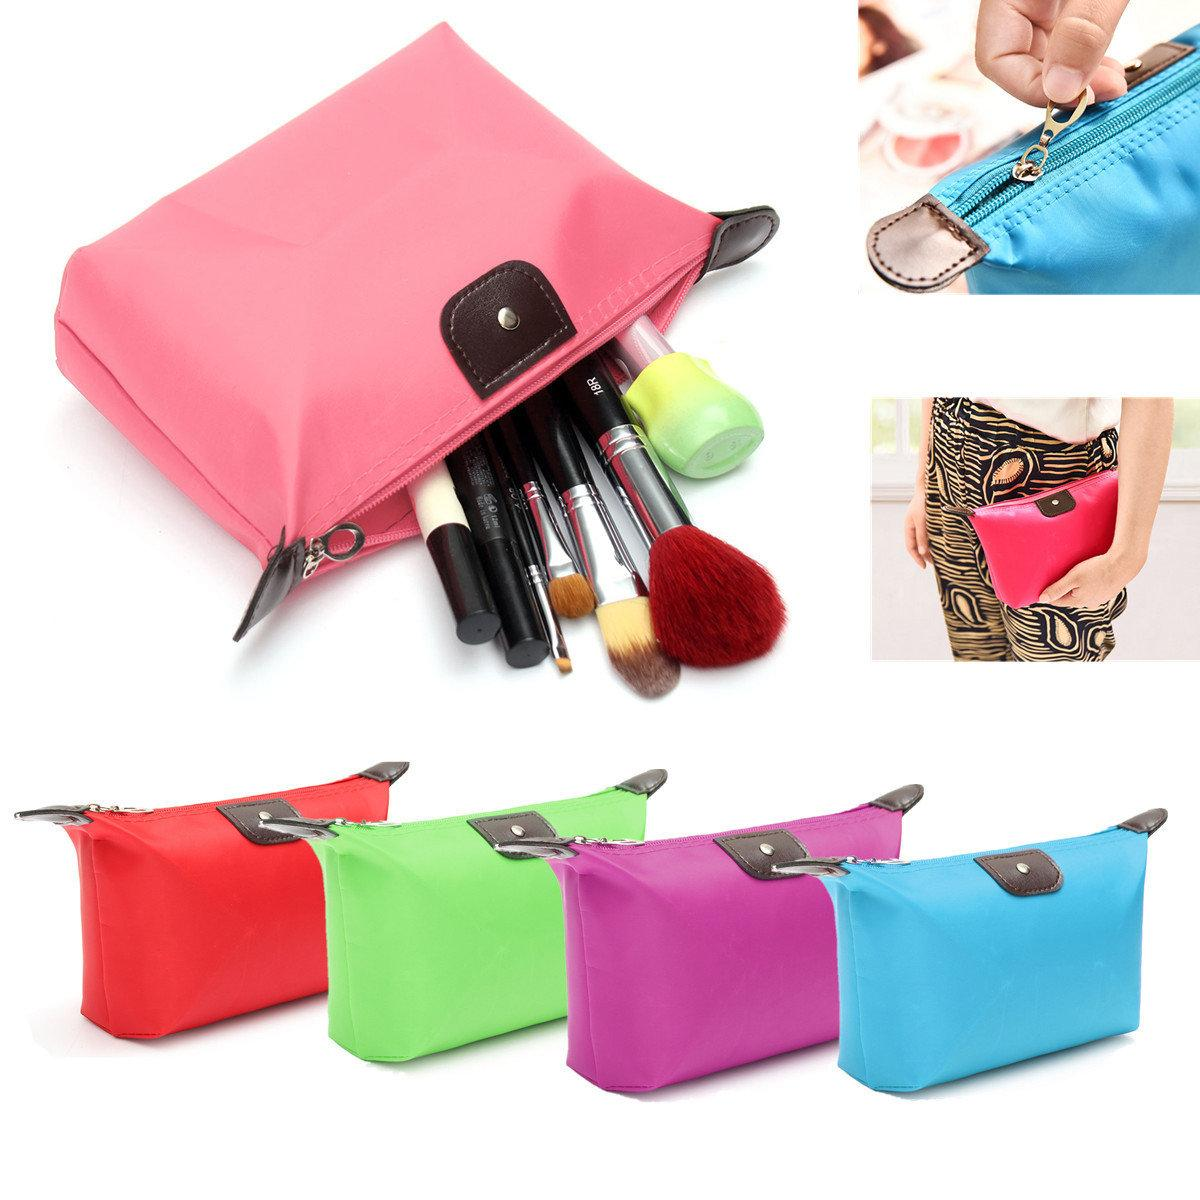 10PCS Travel Make Up Waterproof Pouch Purse Organizer Cosmetic Bag (Assorted Color) Philippines